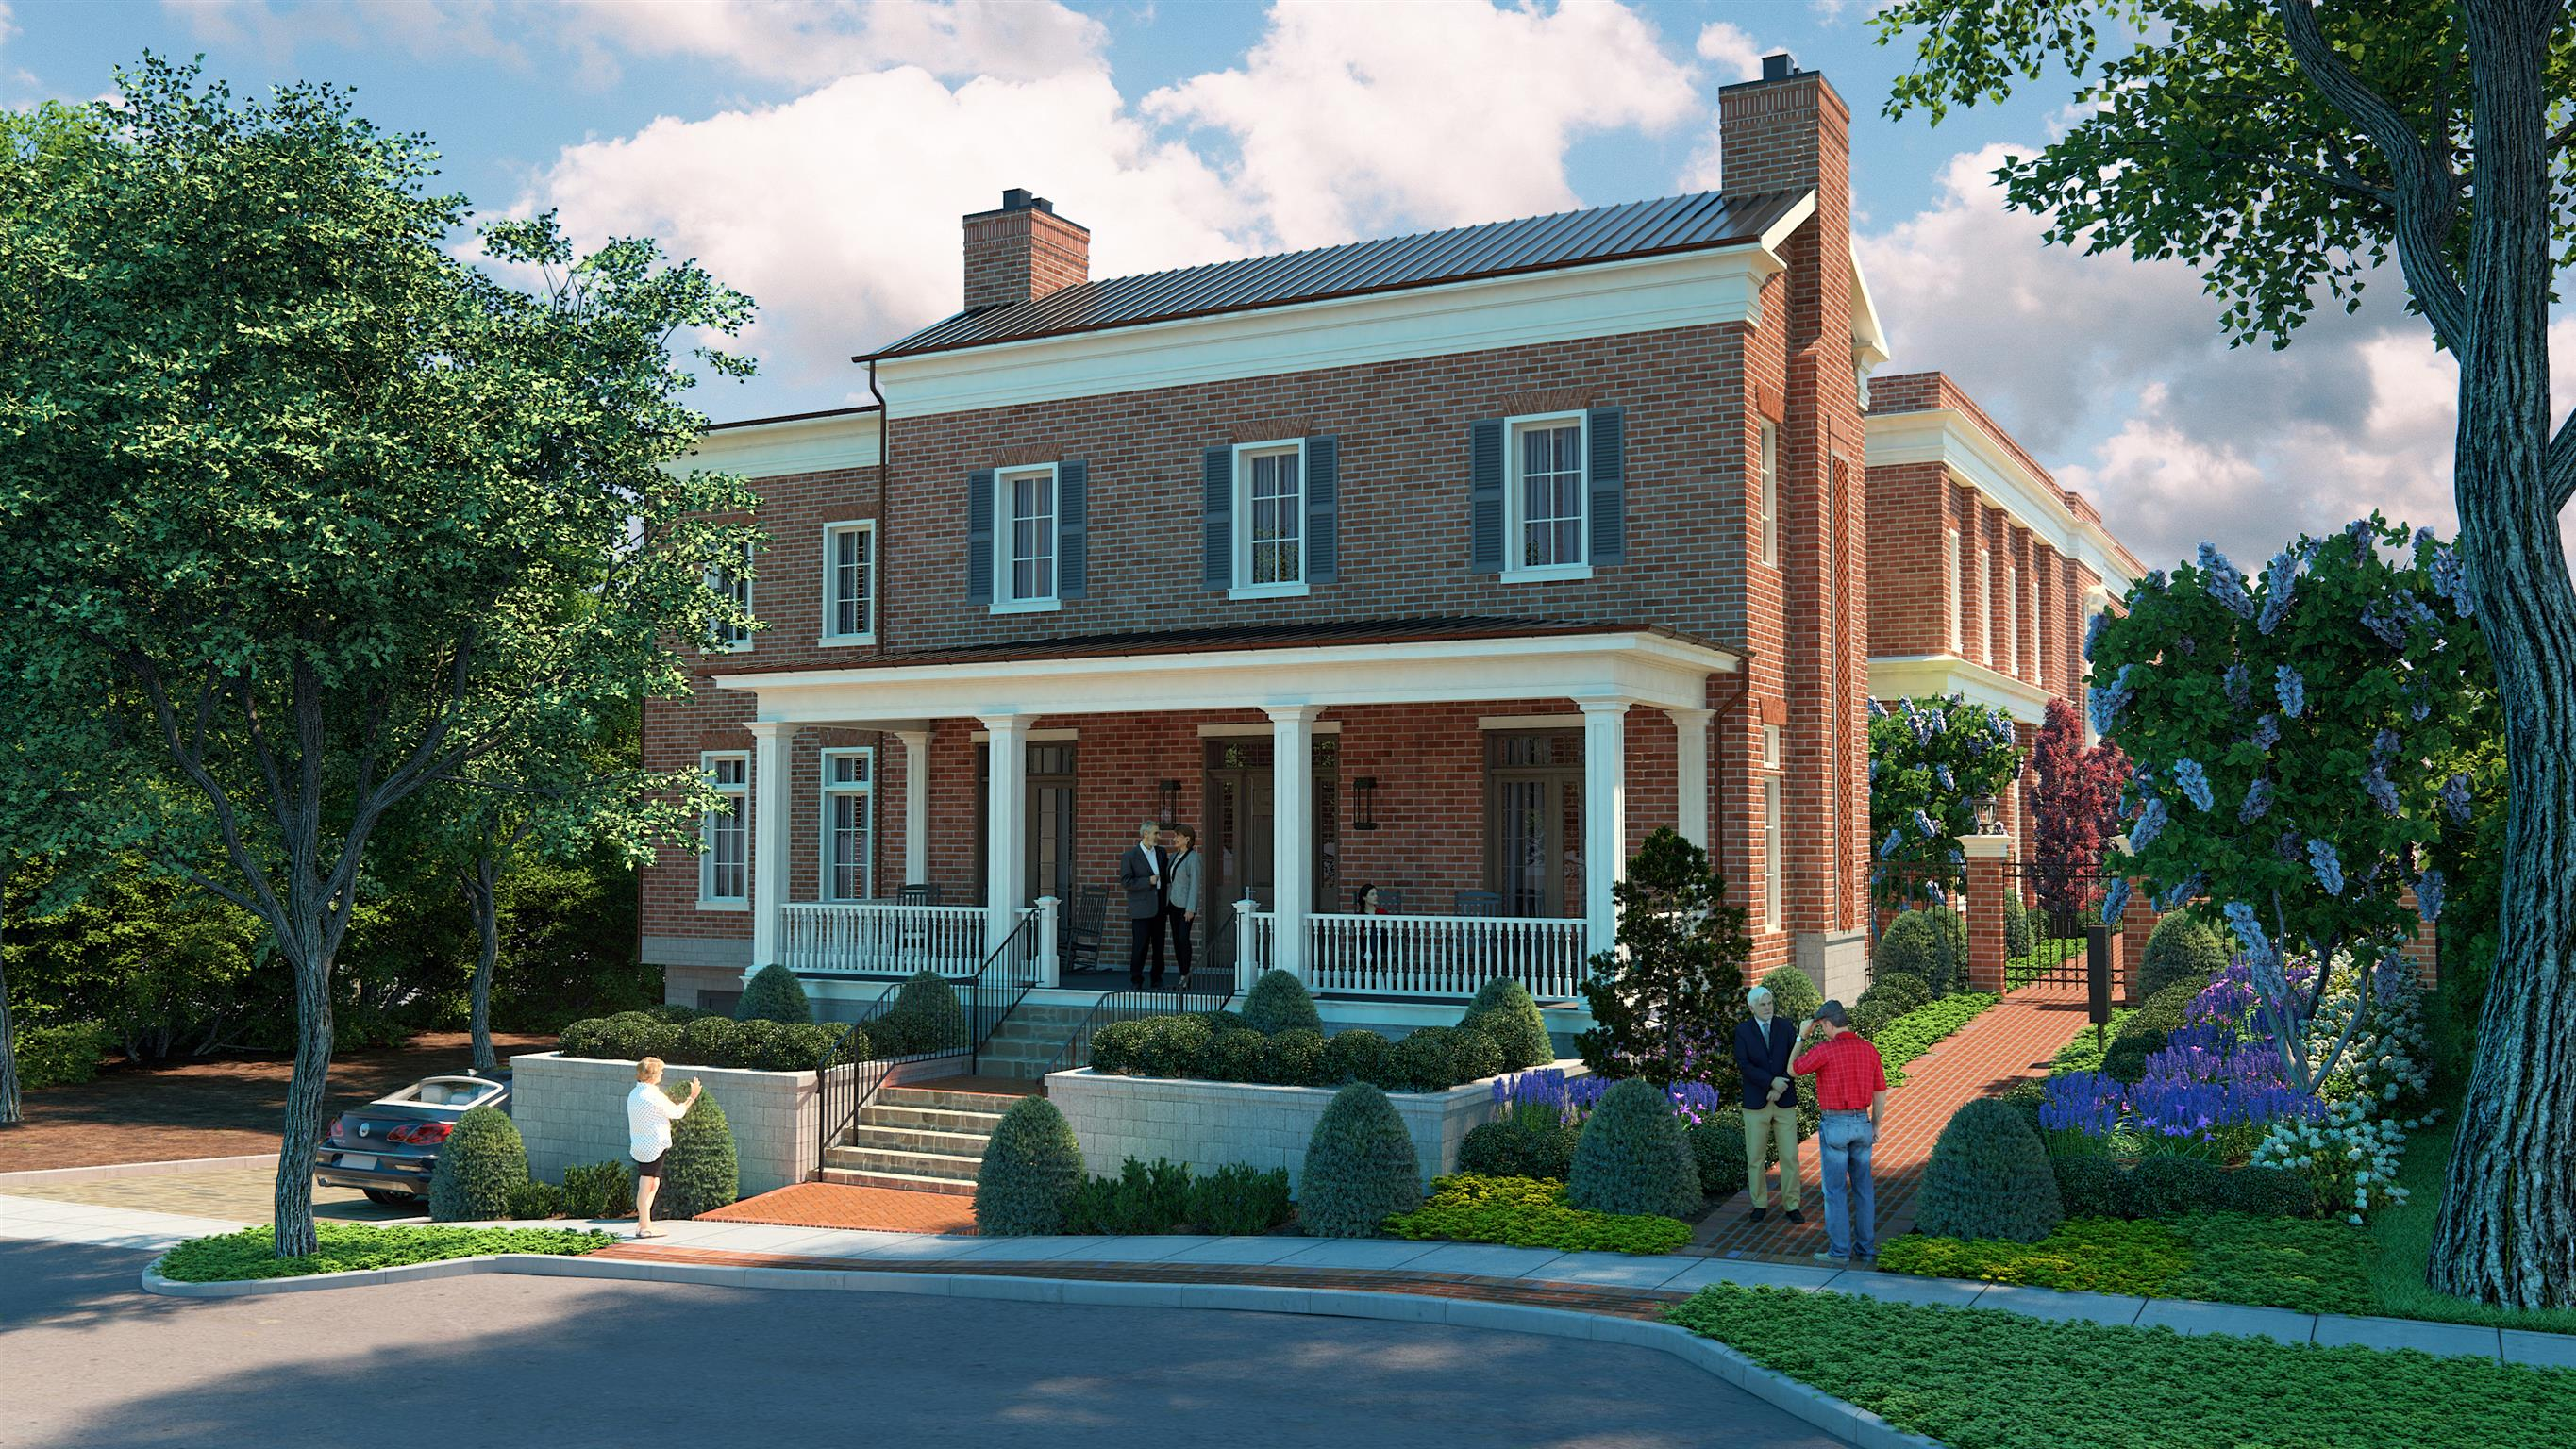 $2,356,875 - 3Br/2Ba -  for Sale in The Arlington At West Main, Franklin